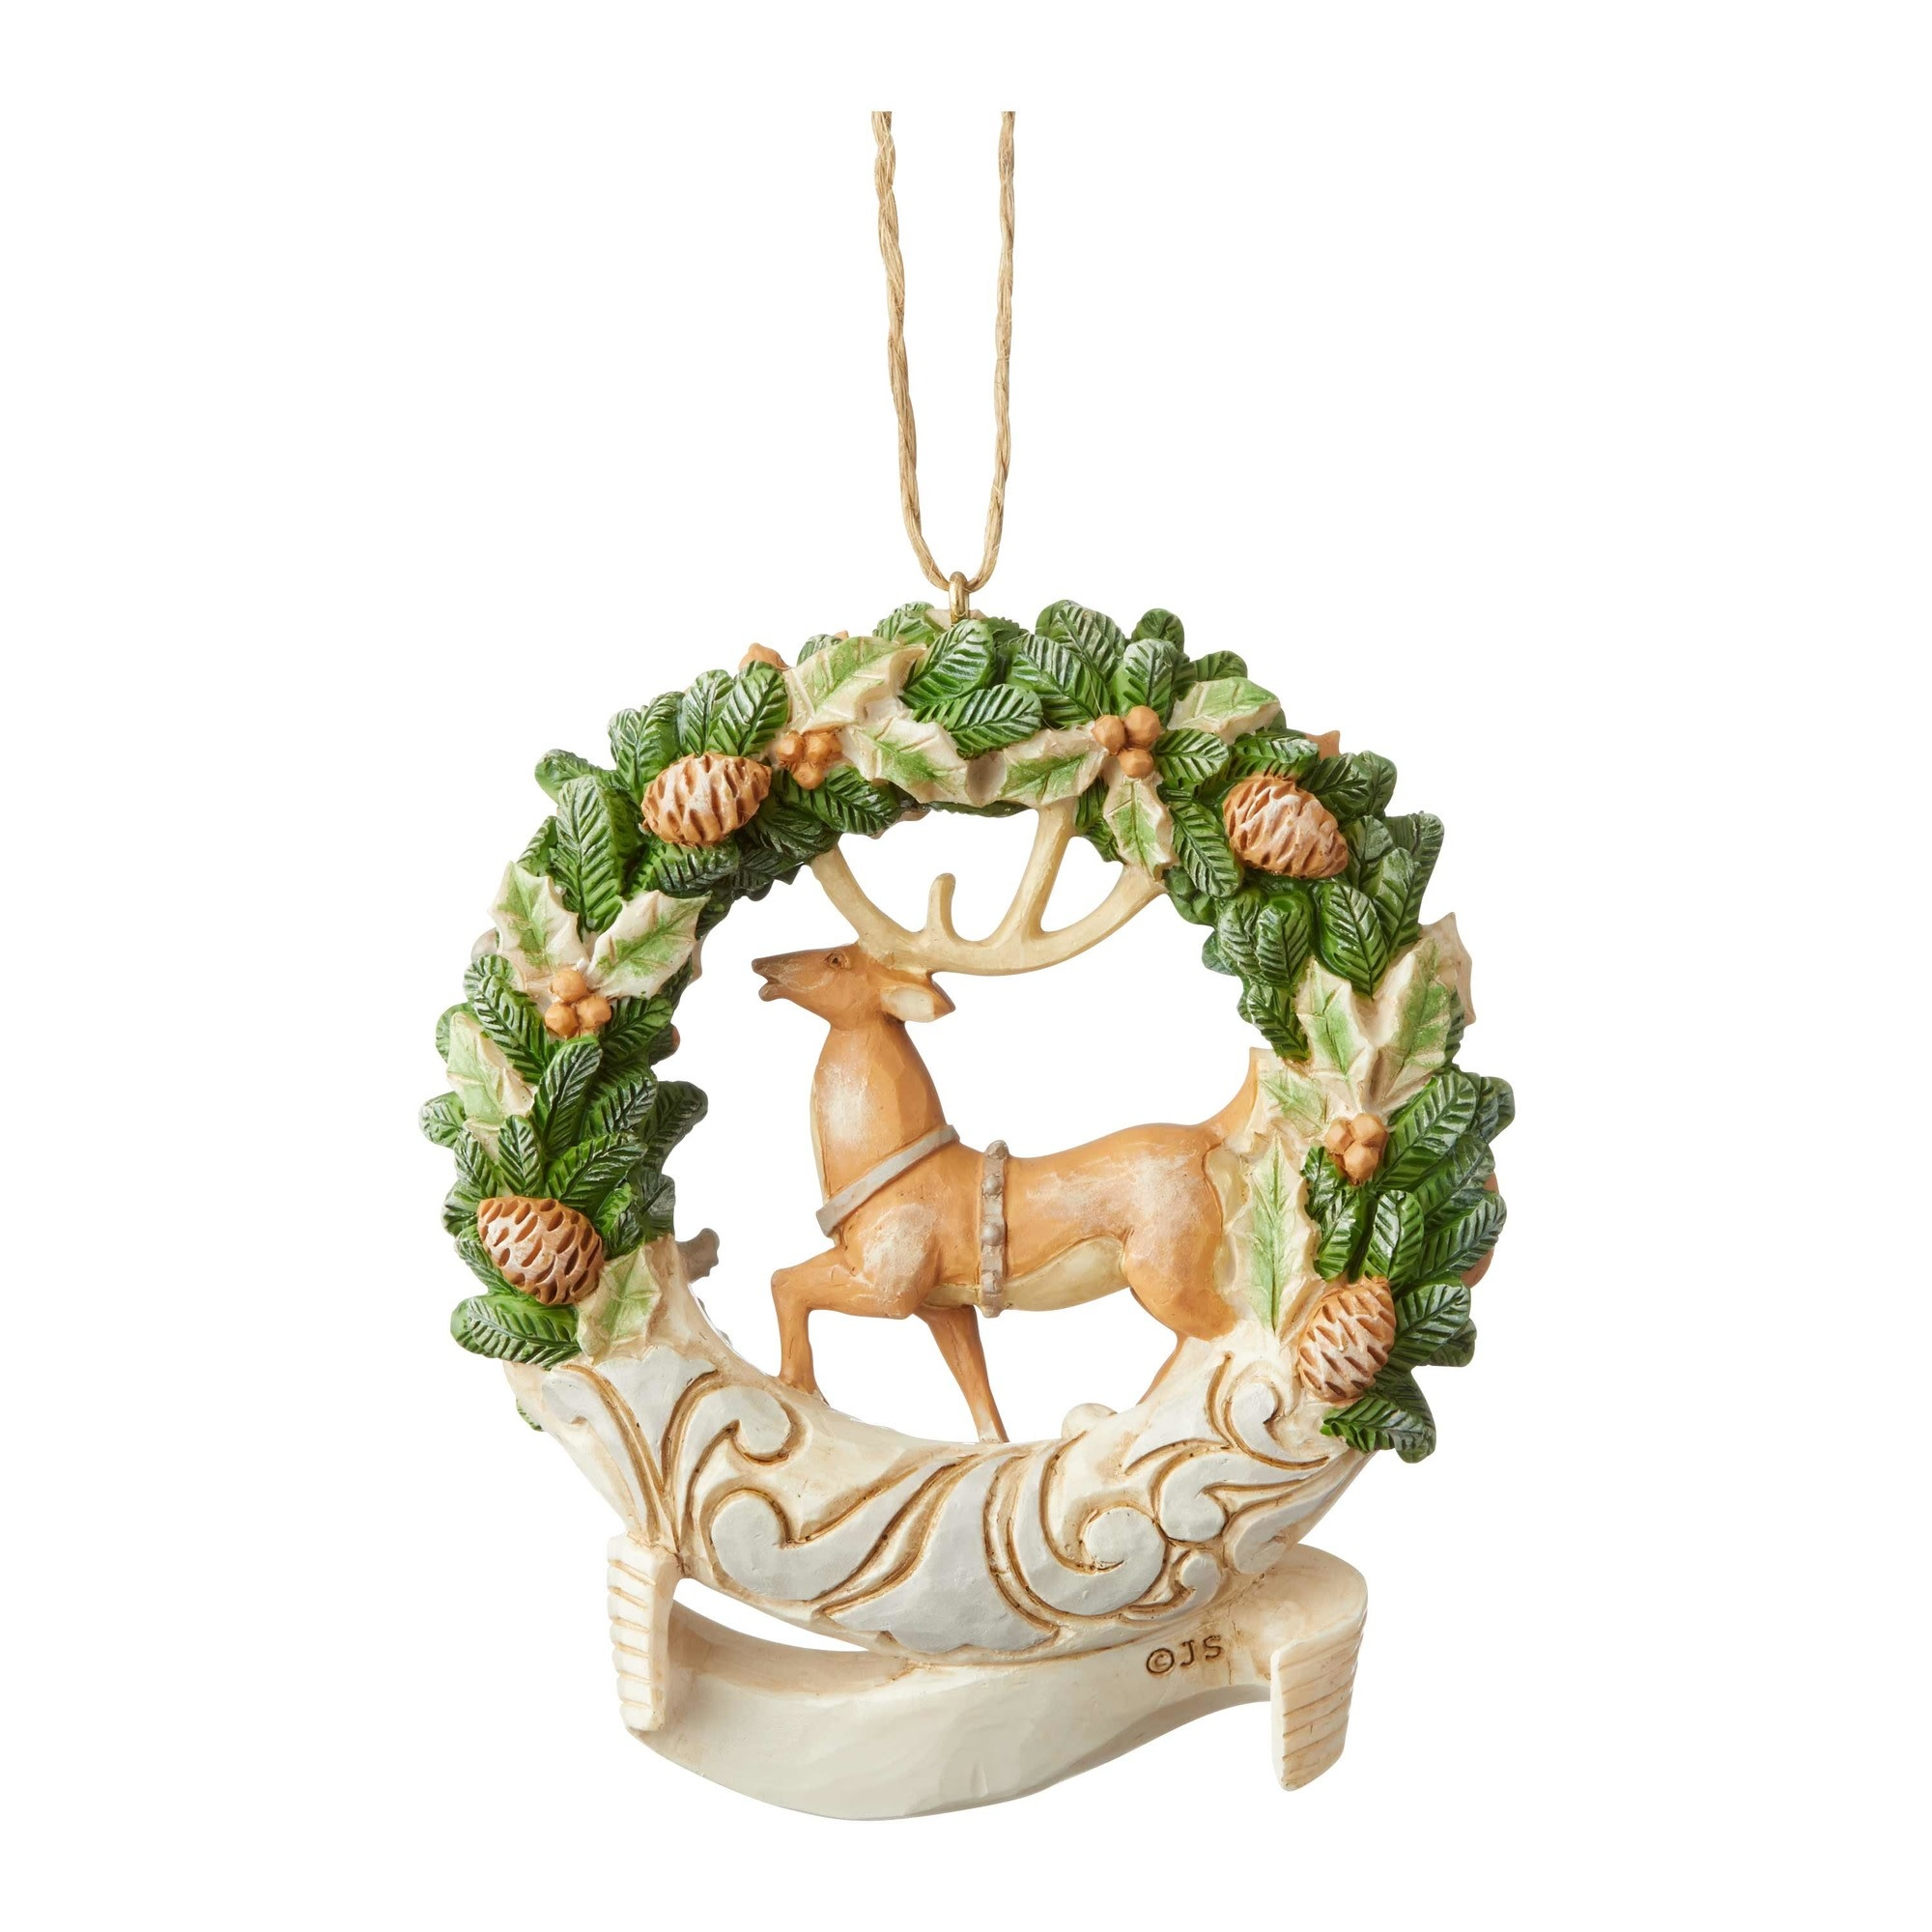 Jim Shore Woodland 2019 Deer Wreath Ornament